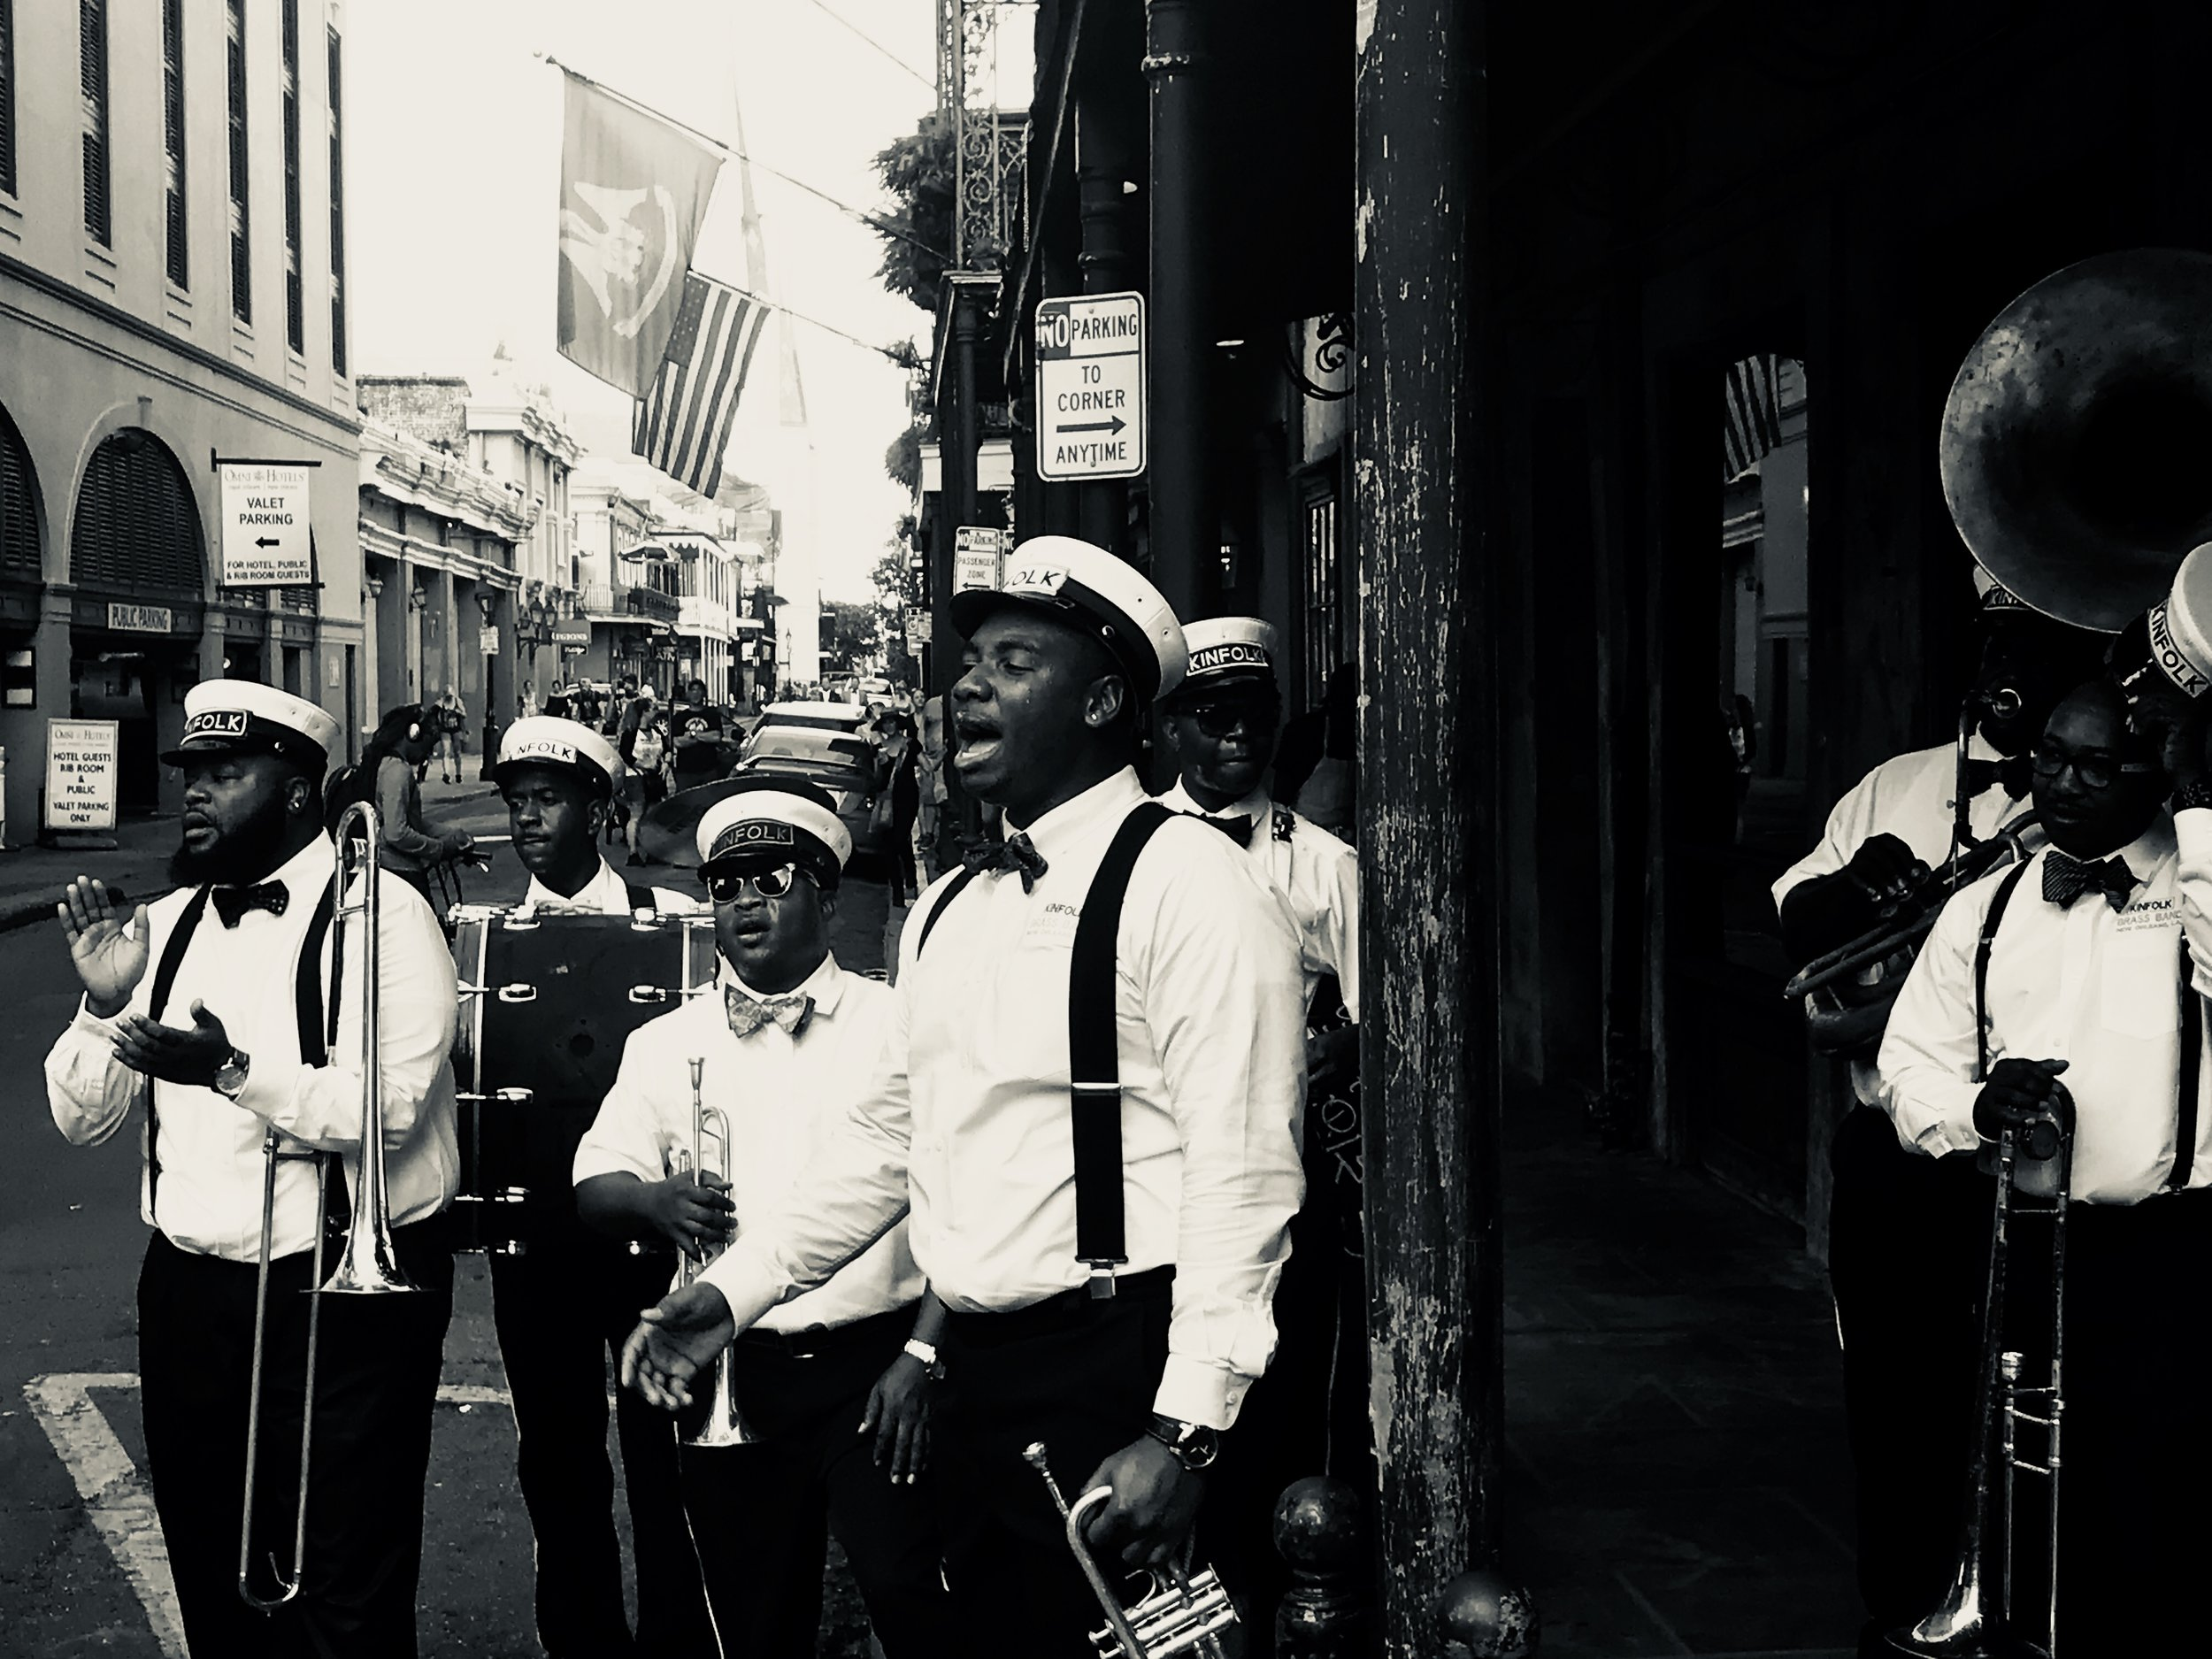 If you're lucky, you might stumble upon a second line like this one!